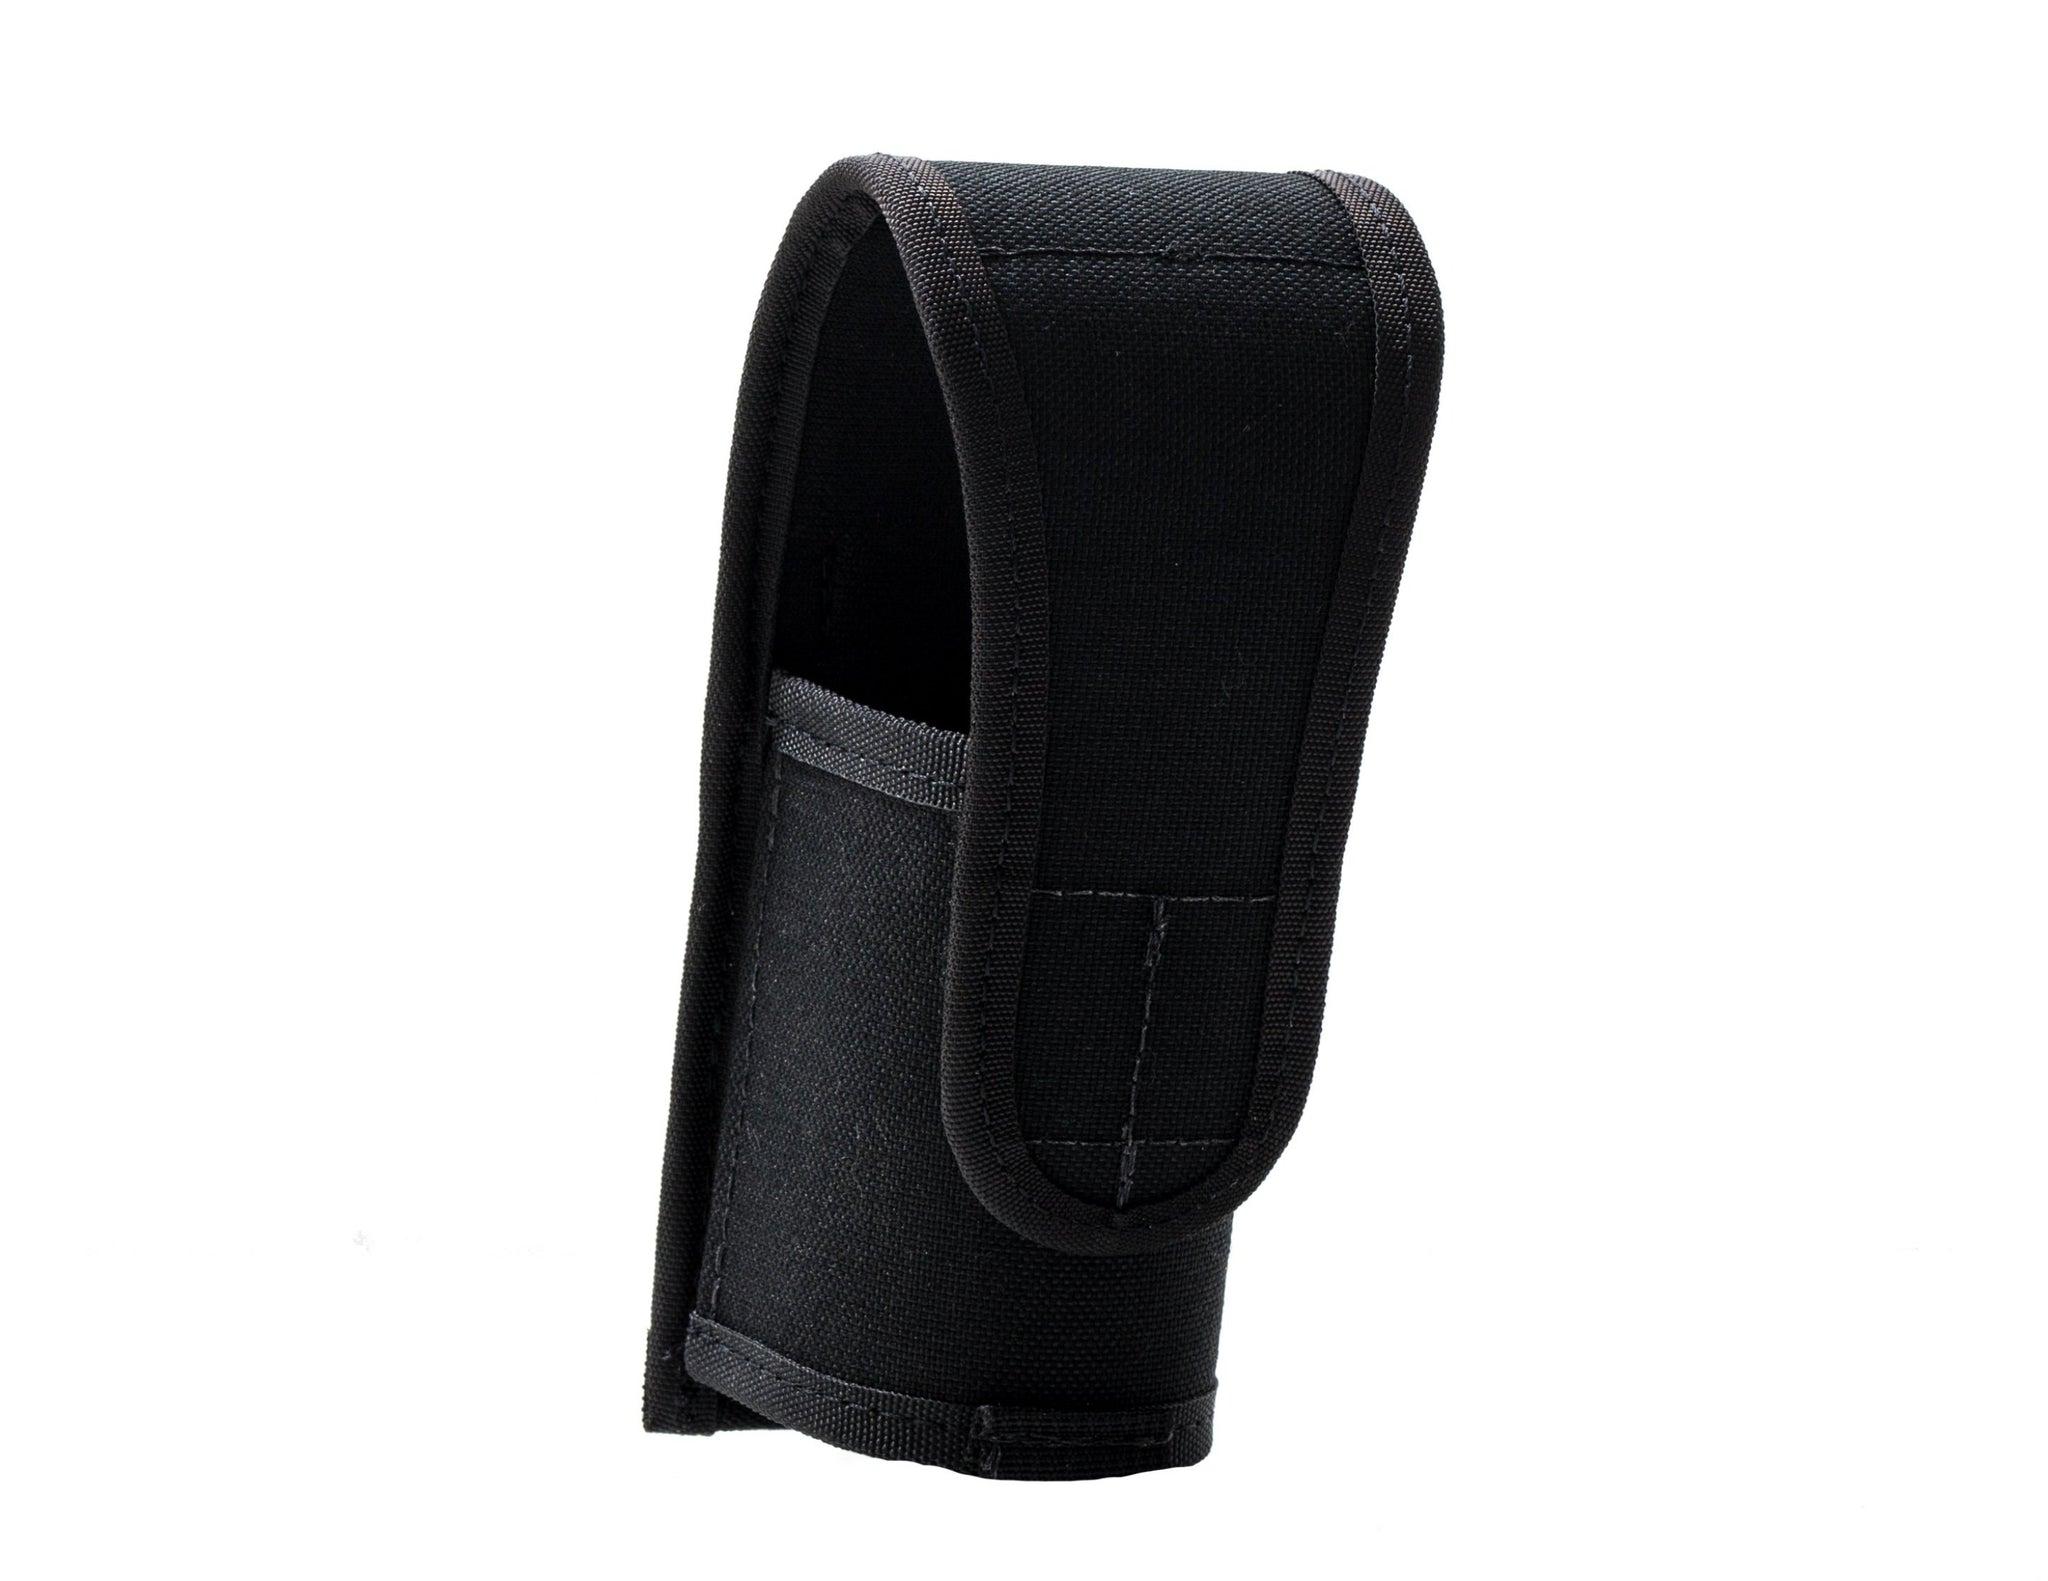 Reflex Protect Blackhawk™ Holster